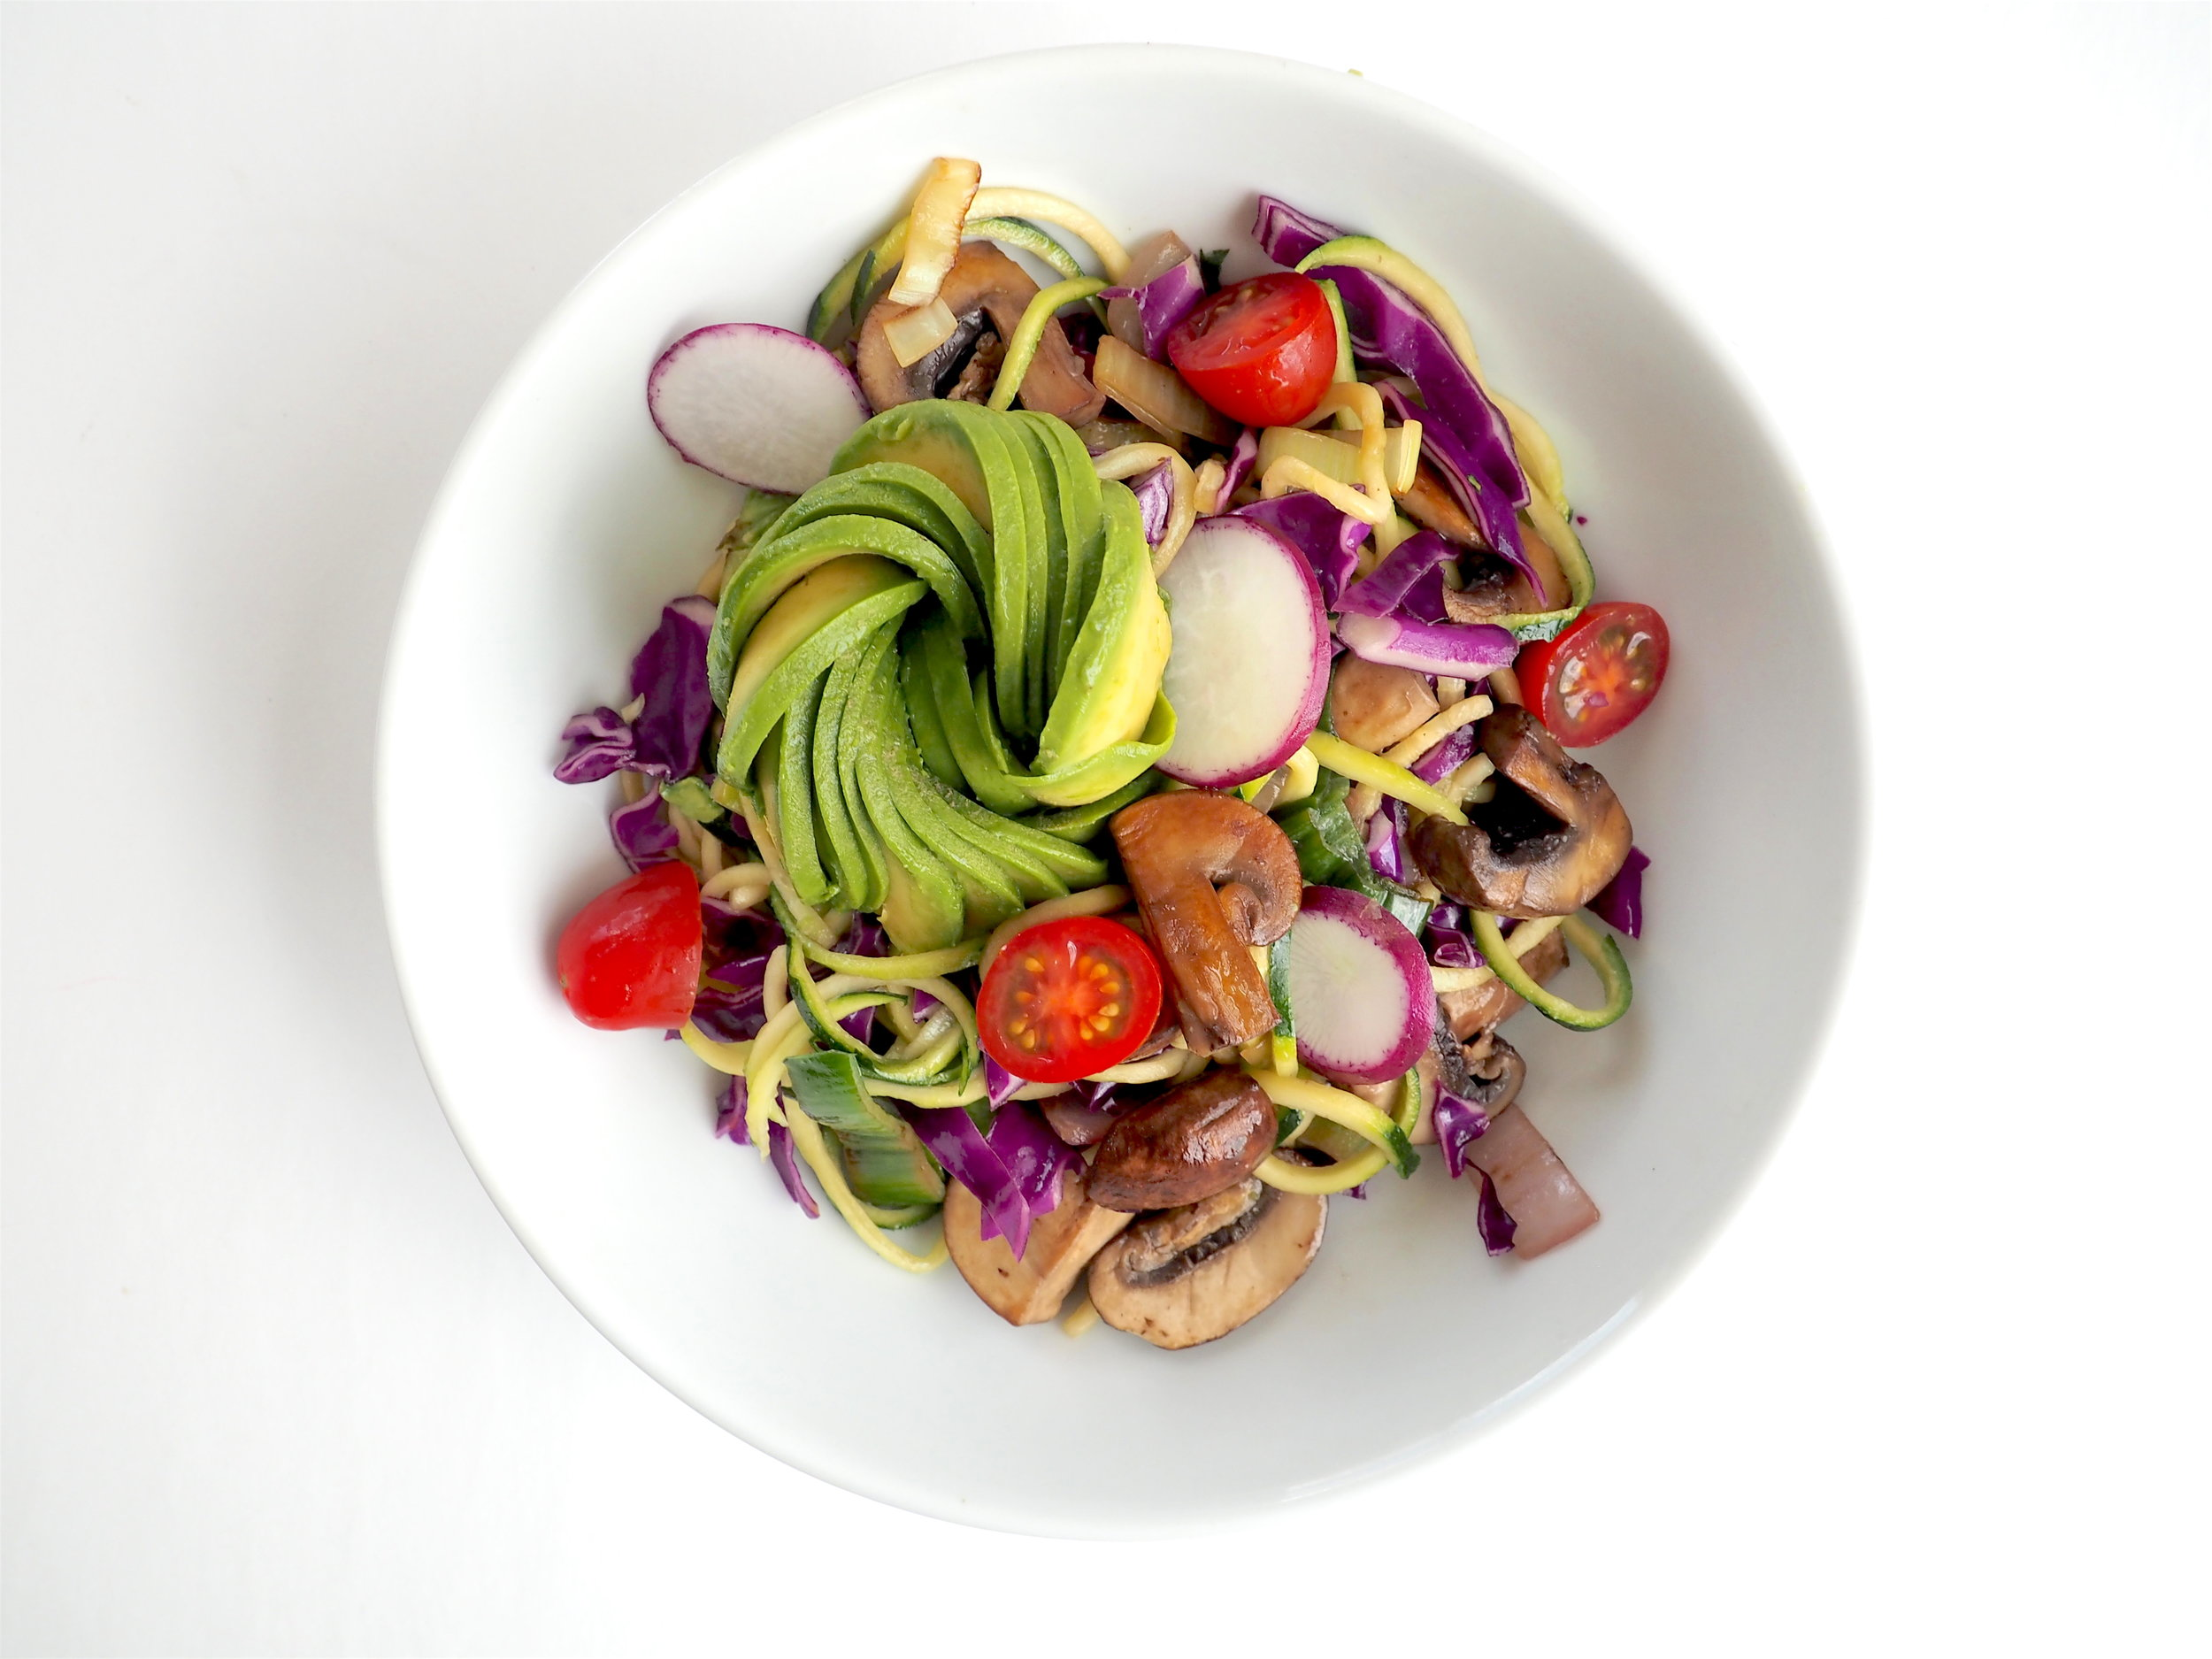 Fresh-Zoodles-With-Sautéed-Leeks-Mushrooms-Avocado-Flower_1.jpg